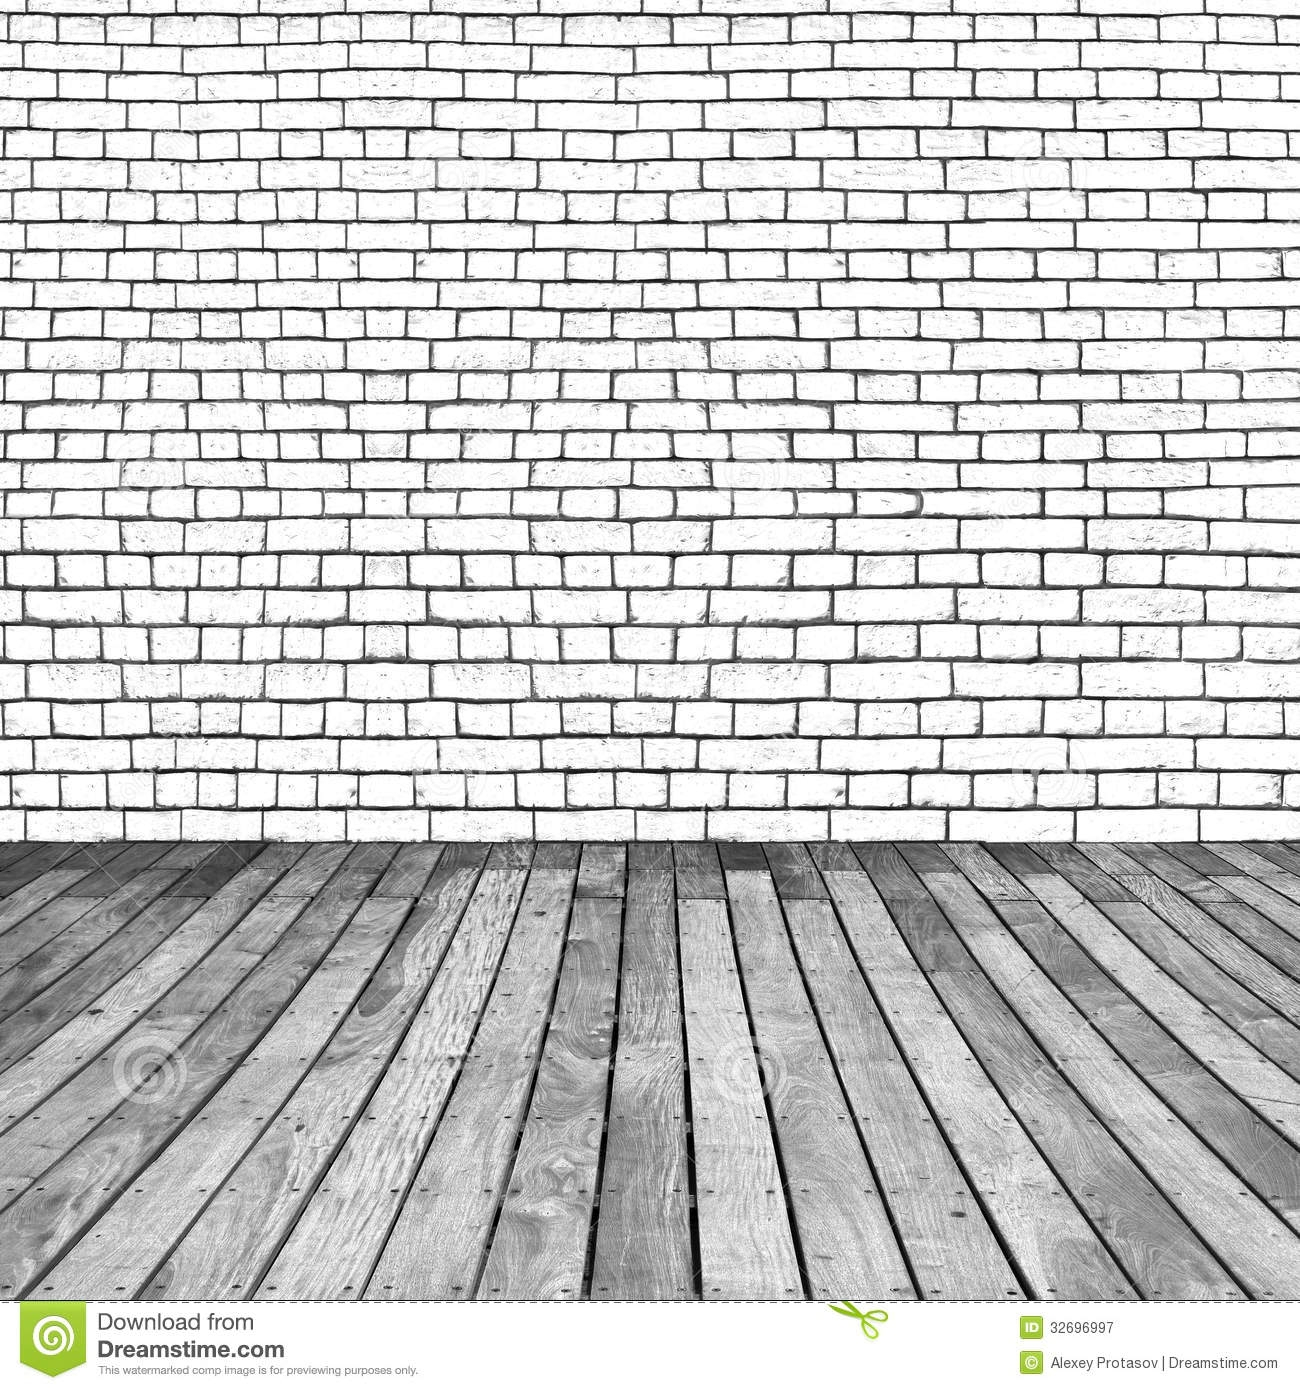 Home Design : Brick Wall Black And White Clipart Fence Closet.